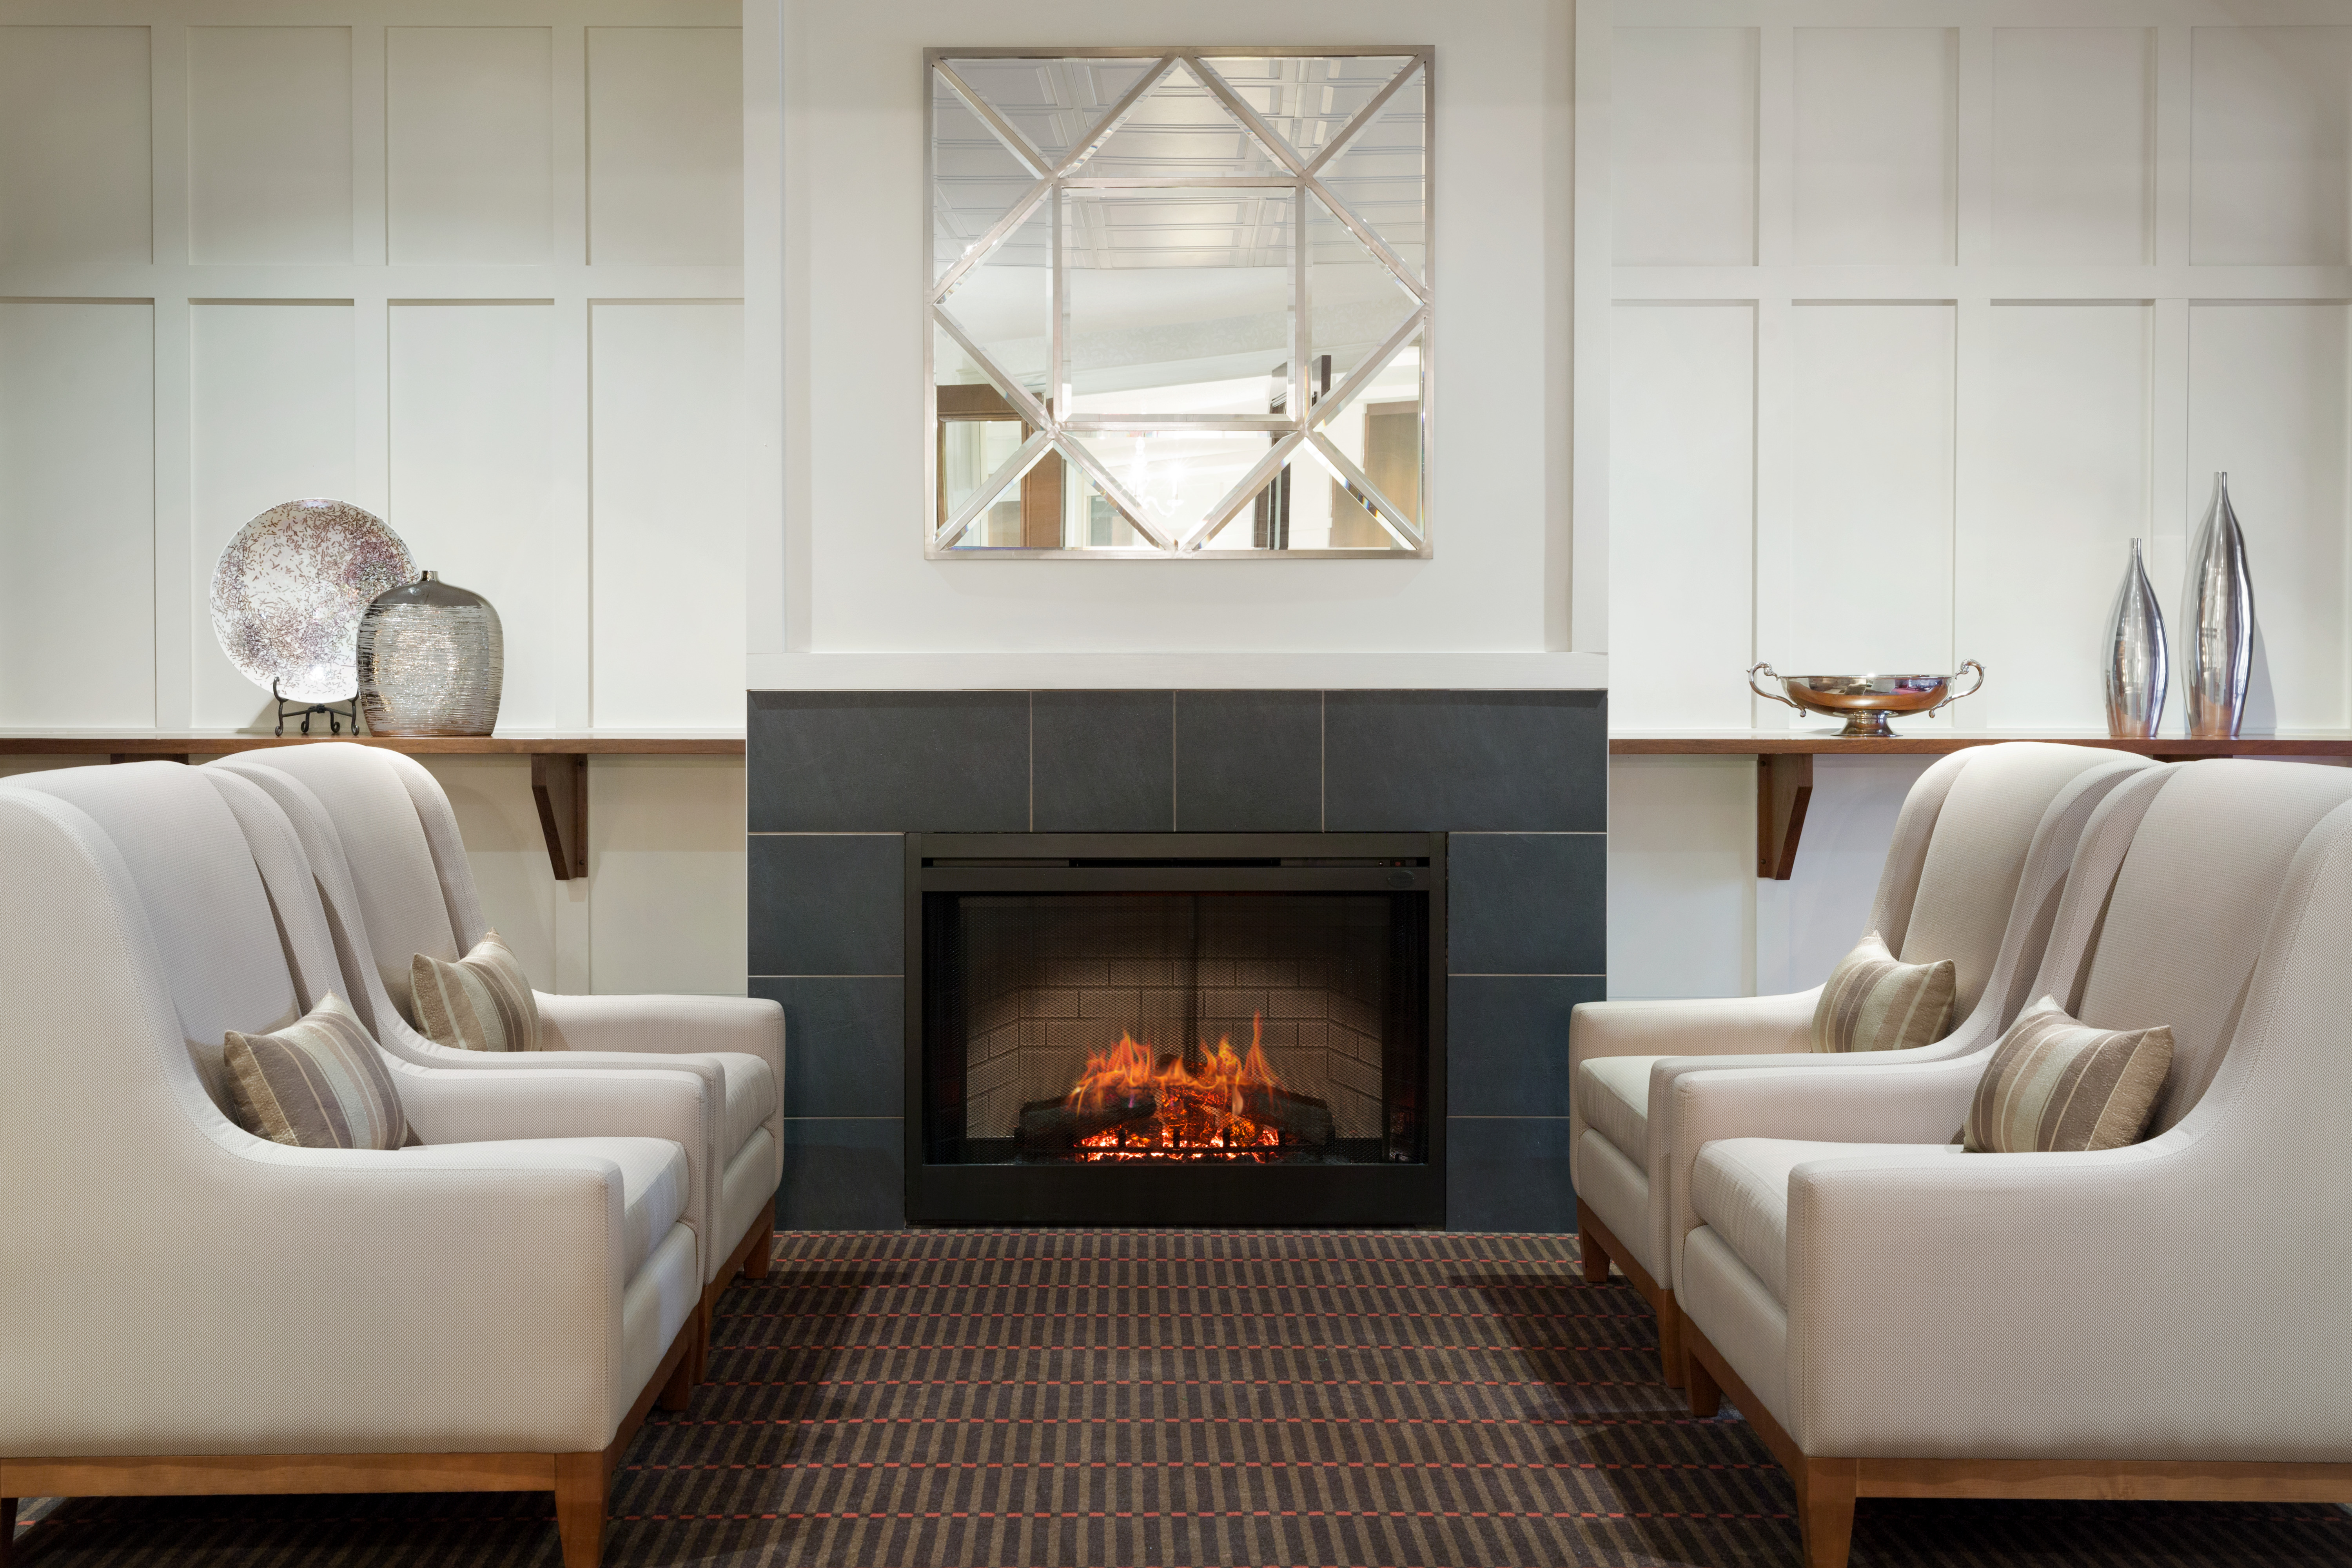 Amica London's Fireside Lounge: four beige armchairs facing one another next to a fireplace.